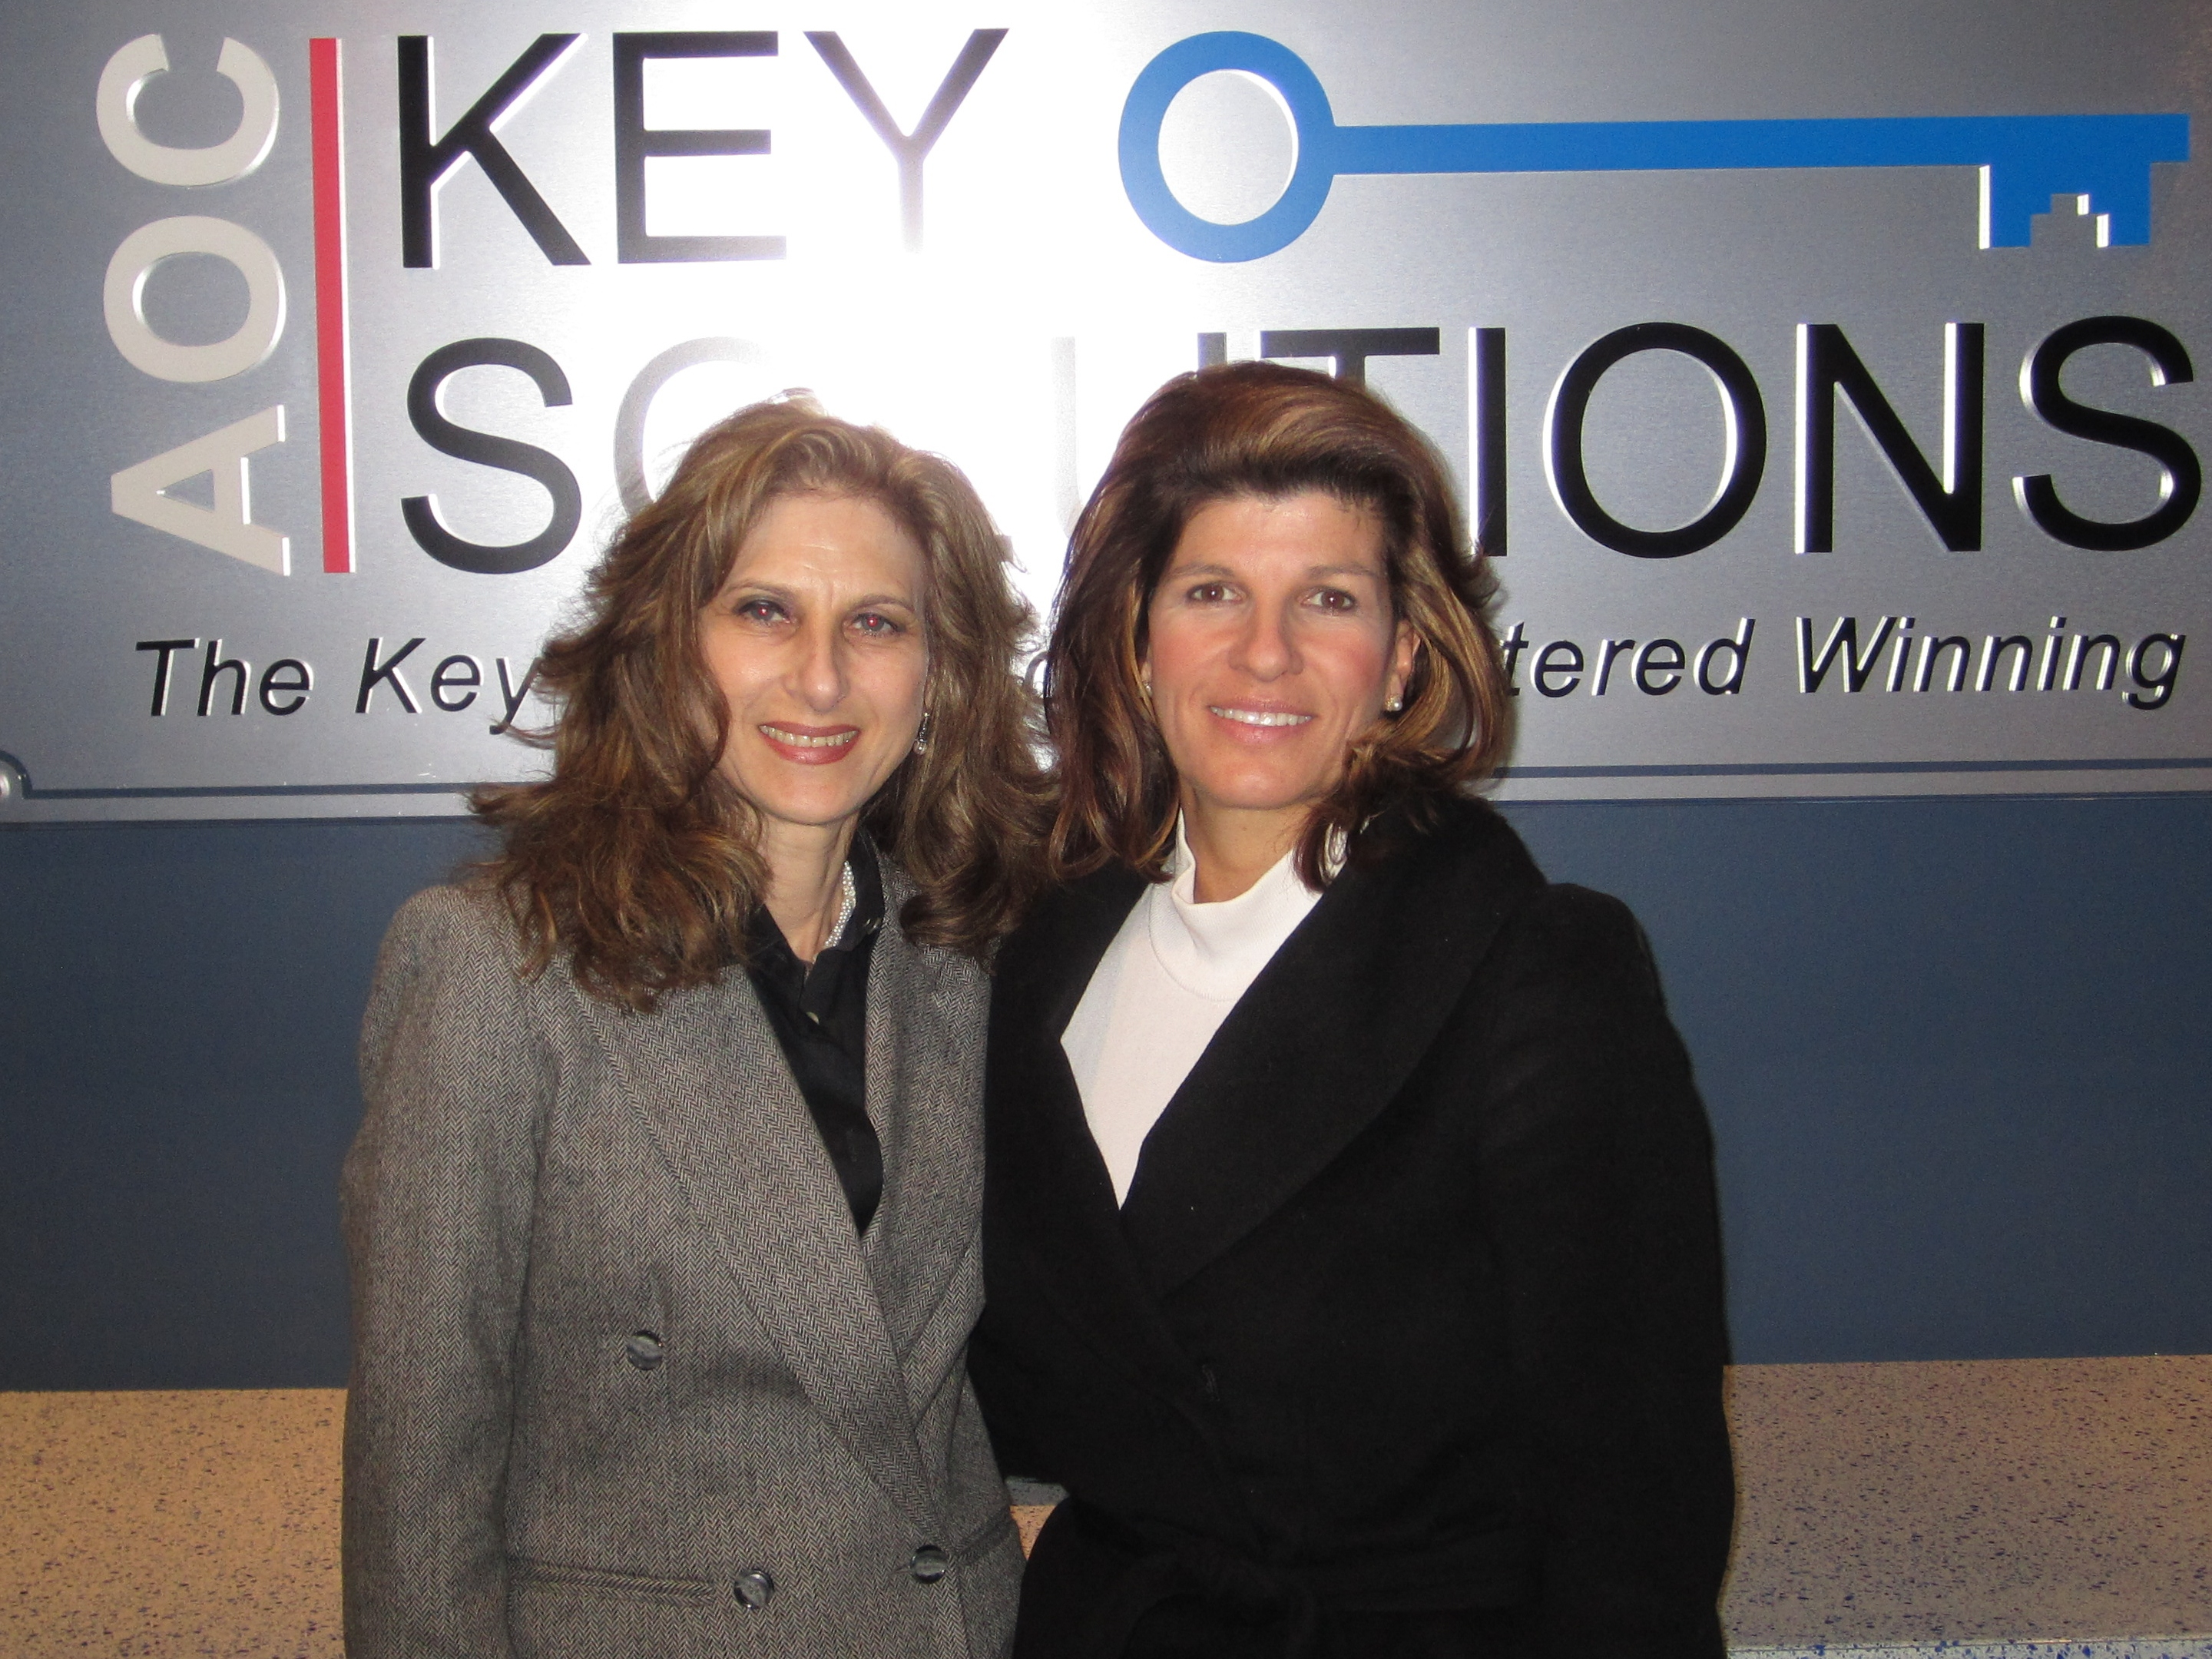 Caption: Joan Michelson  of GCR (l) and Hilary Fordwich of KSI, Credit: Joan Michelson